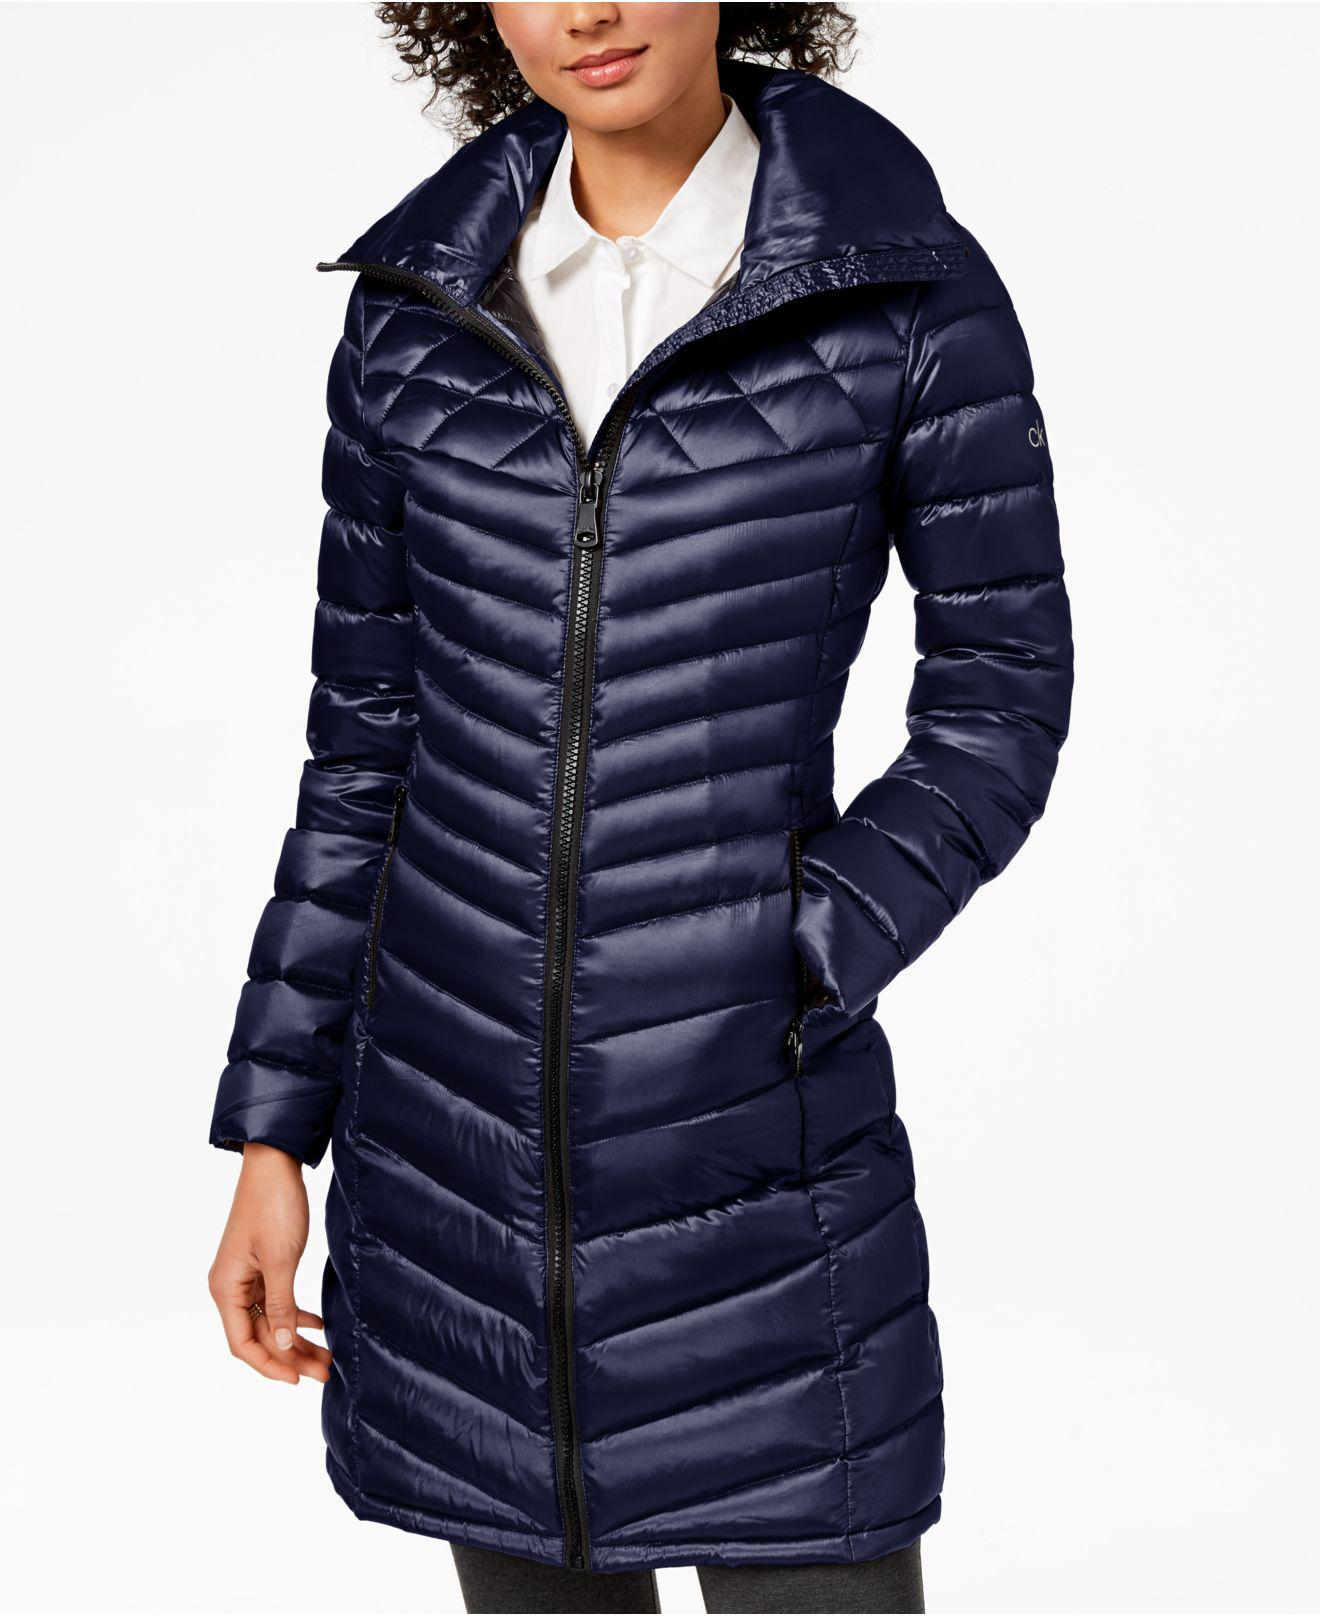 61a0d7098096 Lyst - Calvin Klein Hooded Packable Down Puffer Coat in Blue